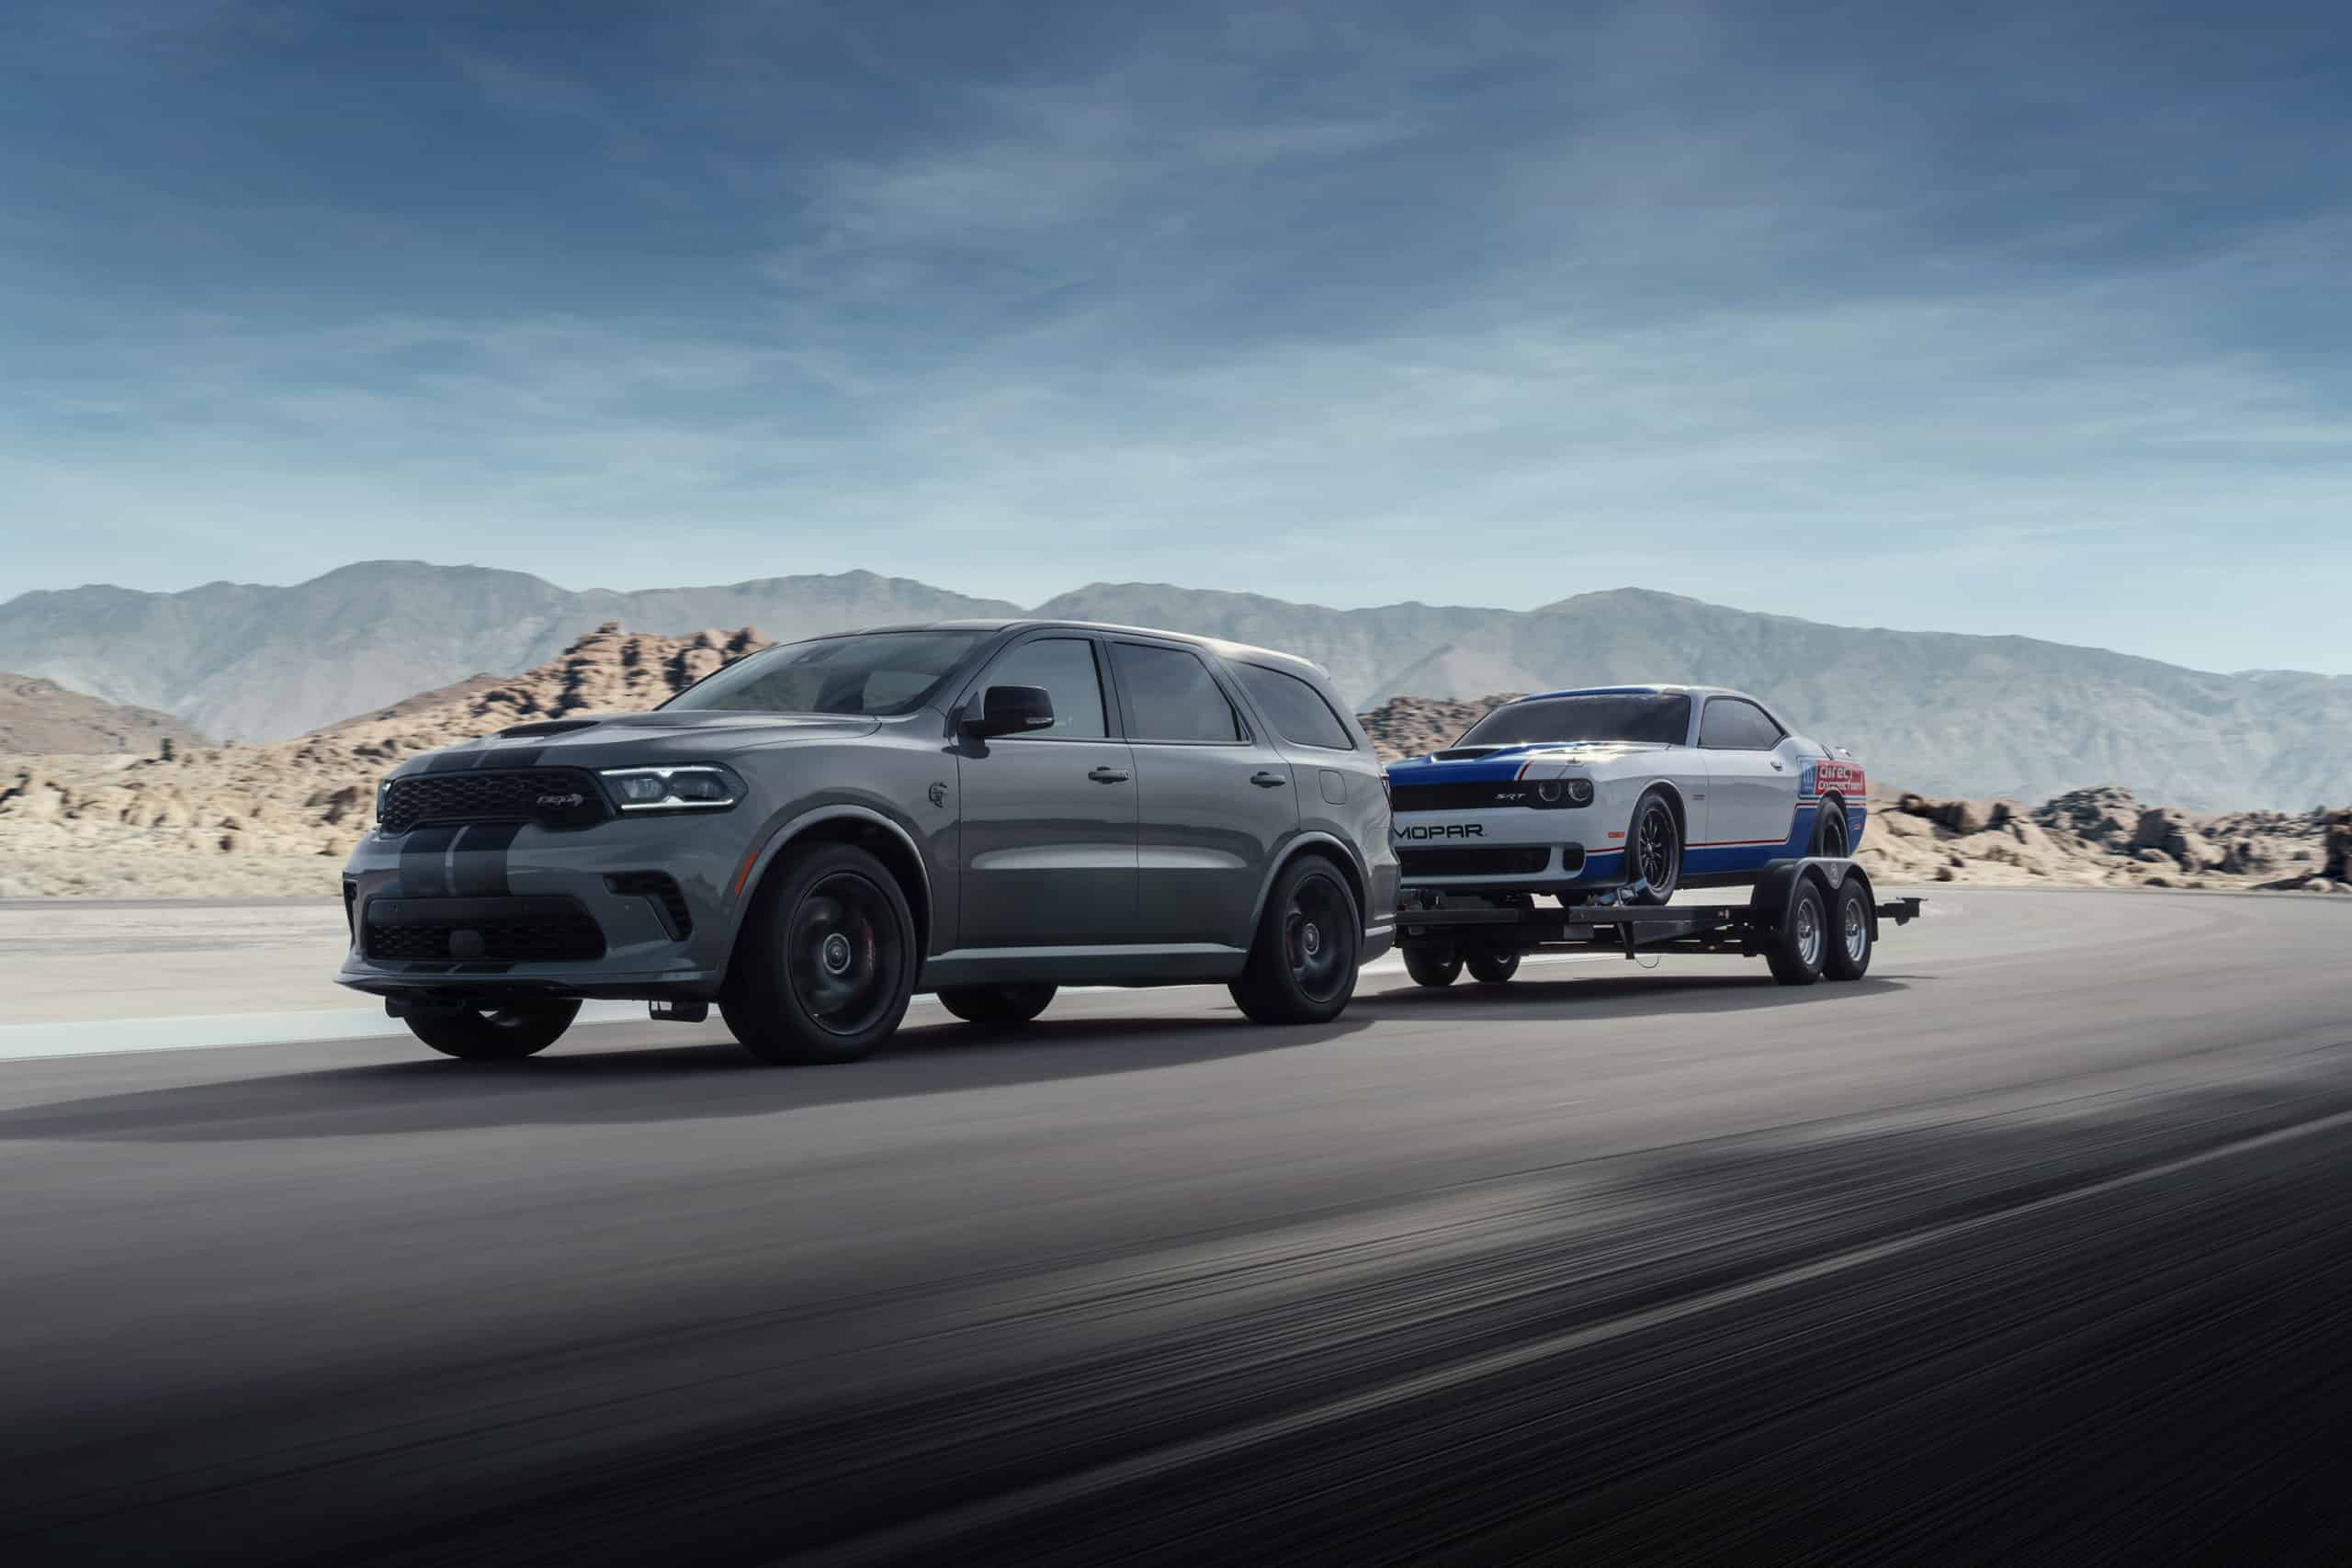 2021 Dodge Durango SRT Hellcat Towing